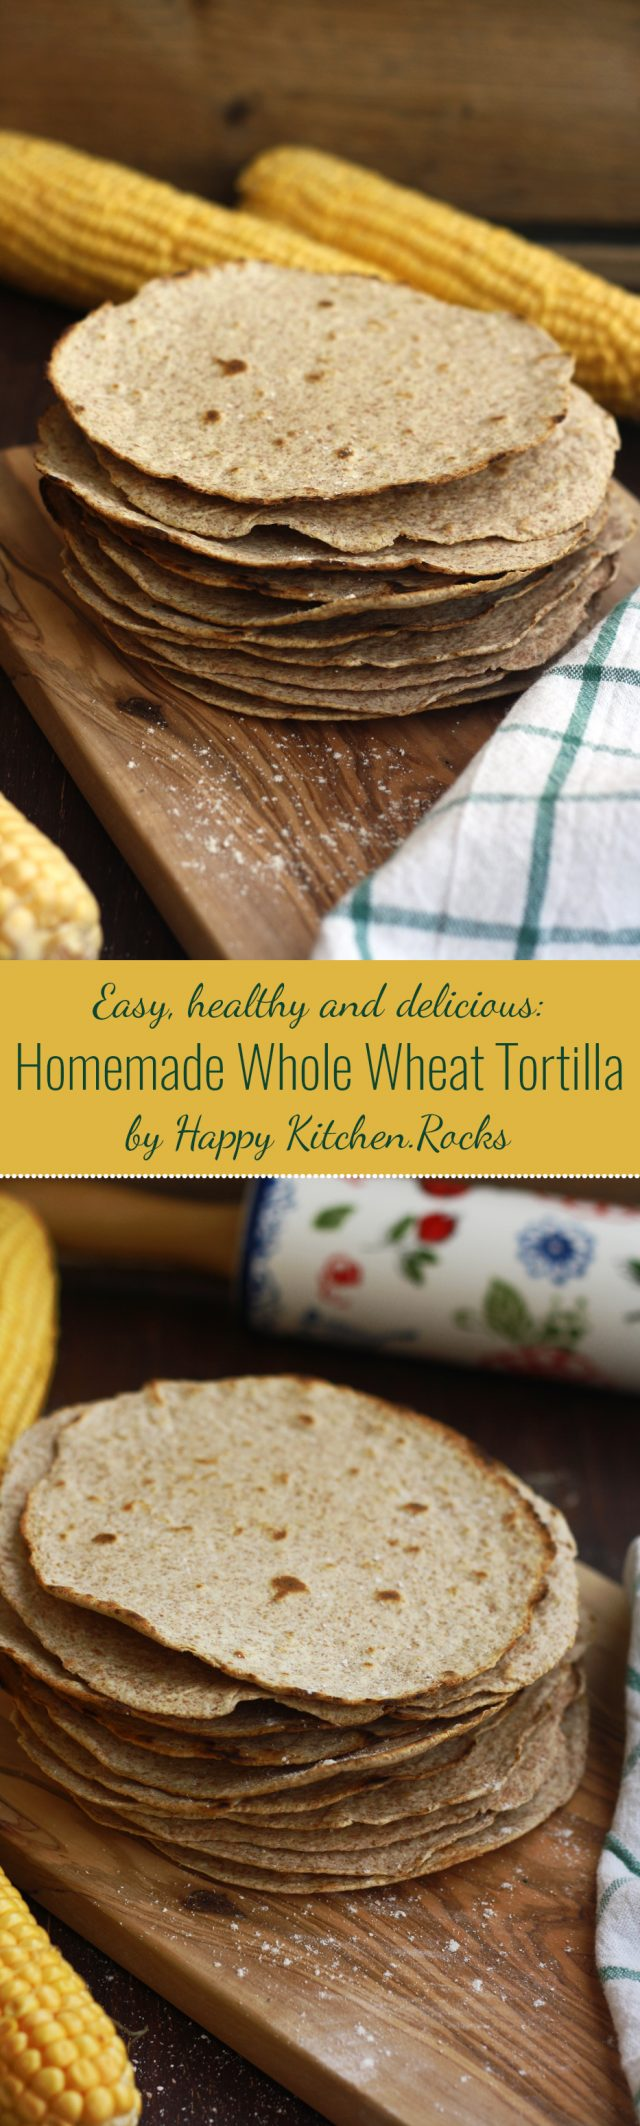 Easy homemade whole wheat tortilla recipe only takes 30 minutes to make from scratch! They freeze well and are much healthier and cheaper than store-bought.